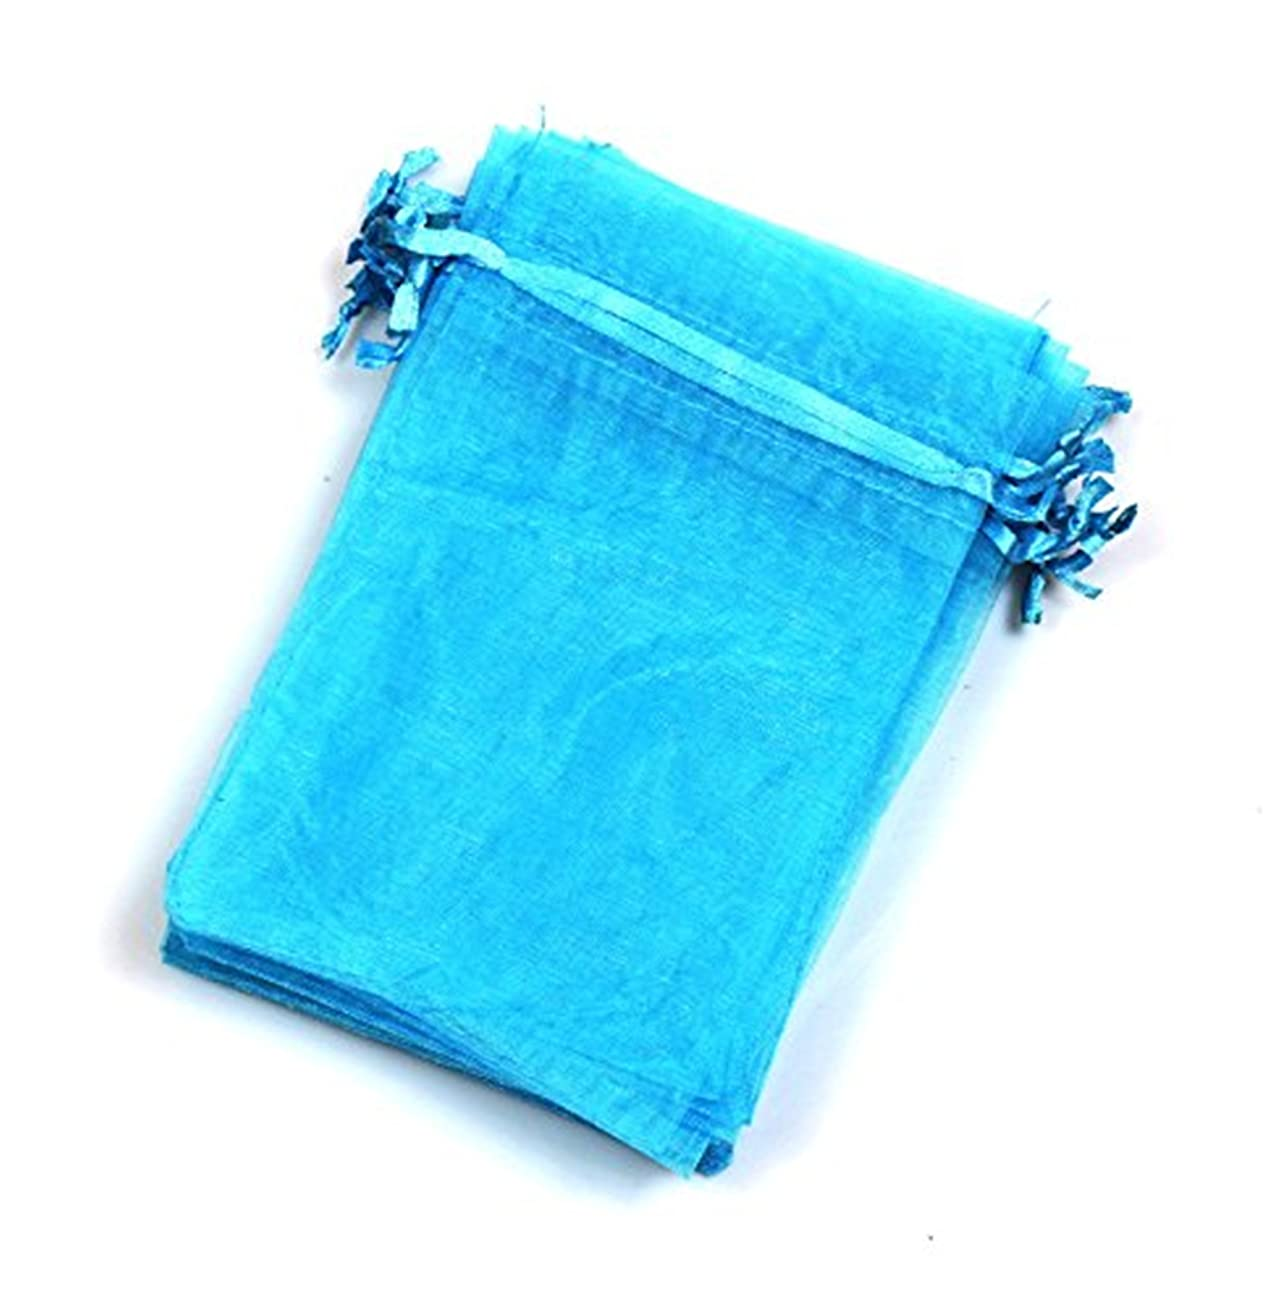 EDENKISS Blue Turquoise Color Drawstring Organza Jewelry Pouch Bags 2.8x3.6 4x6 5x7 Wholesale Option (200, 2.8x3.6)